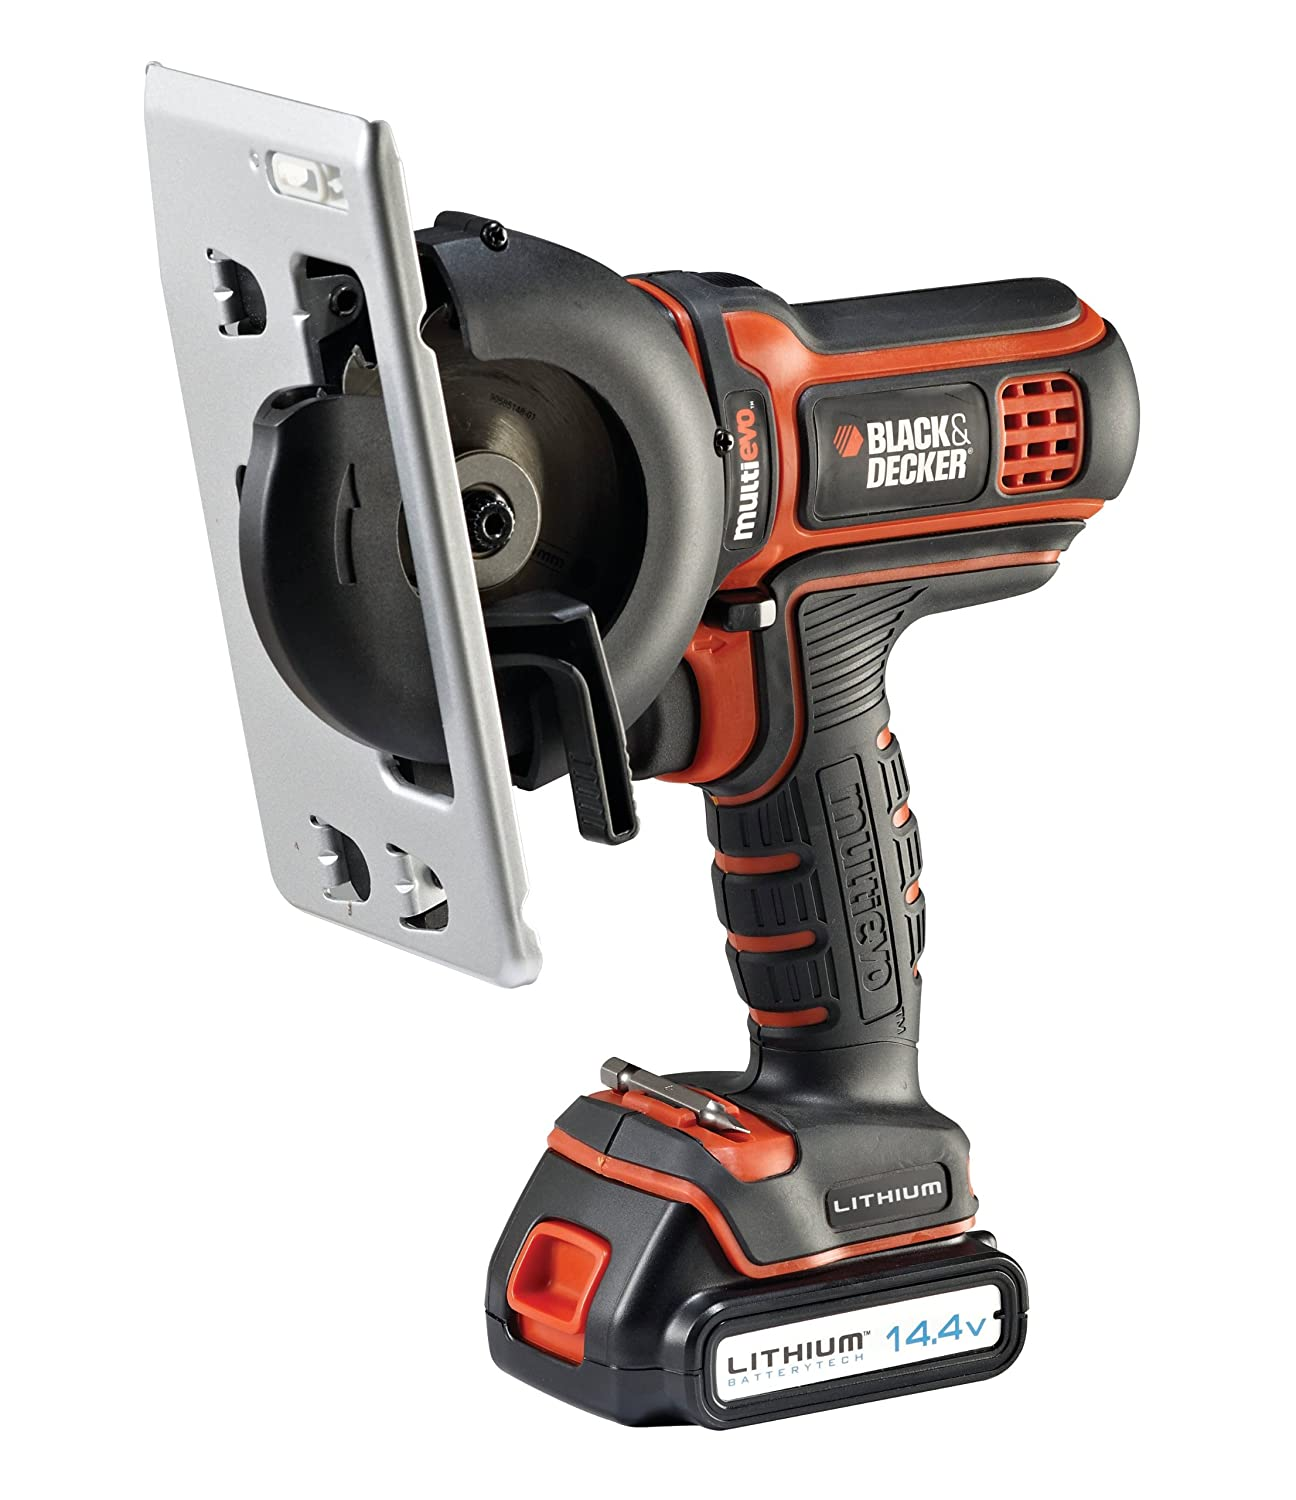 black and decker tools. black+decker mtts7-xj multi-evo multi-tool trim saw attachment: amazon.co.uk: diy \u0026 tools black and decker